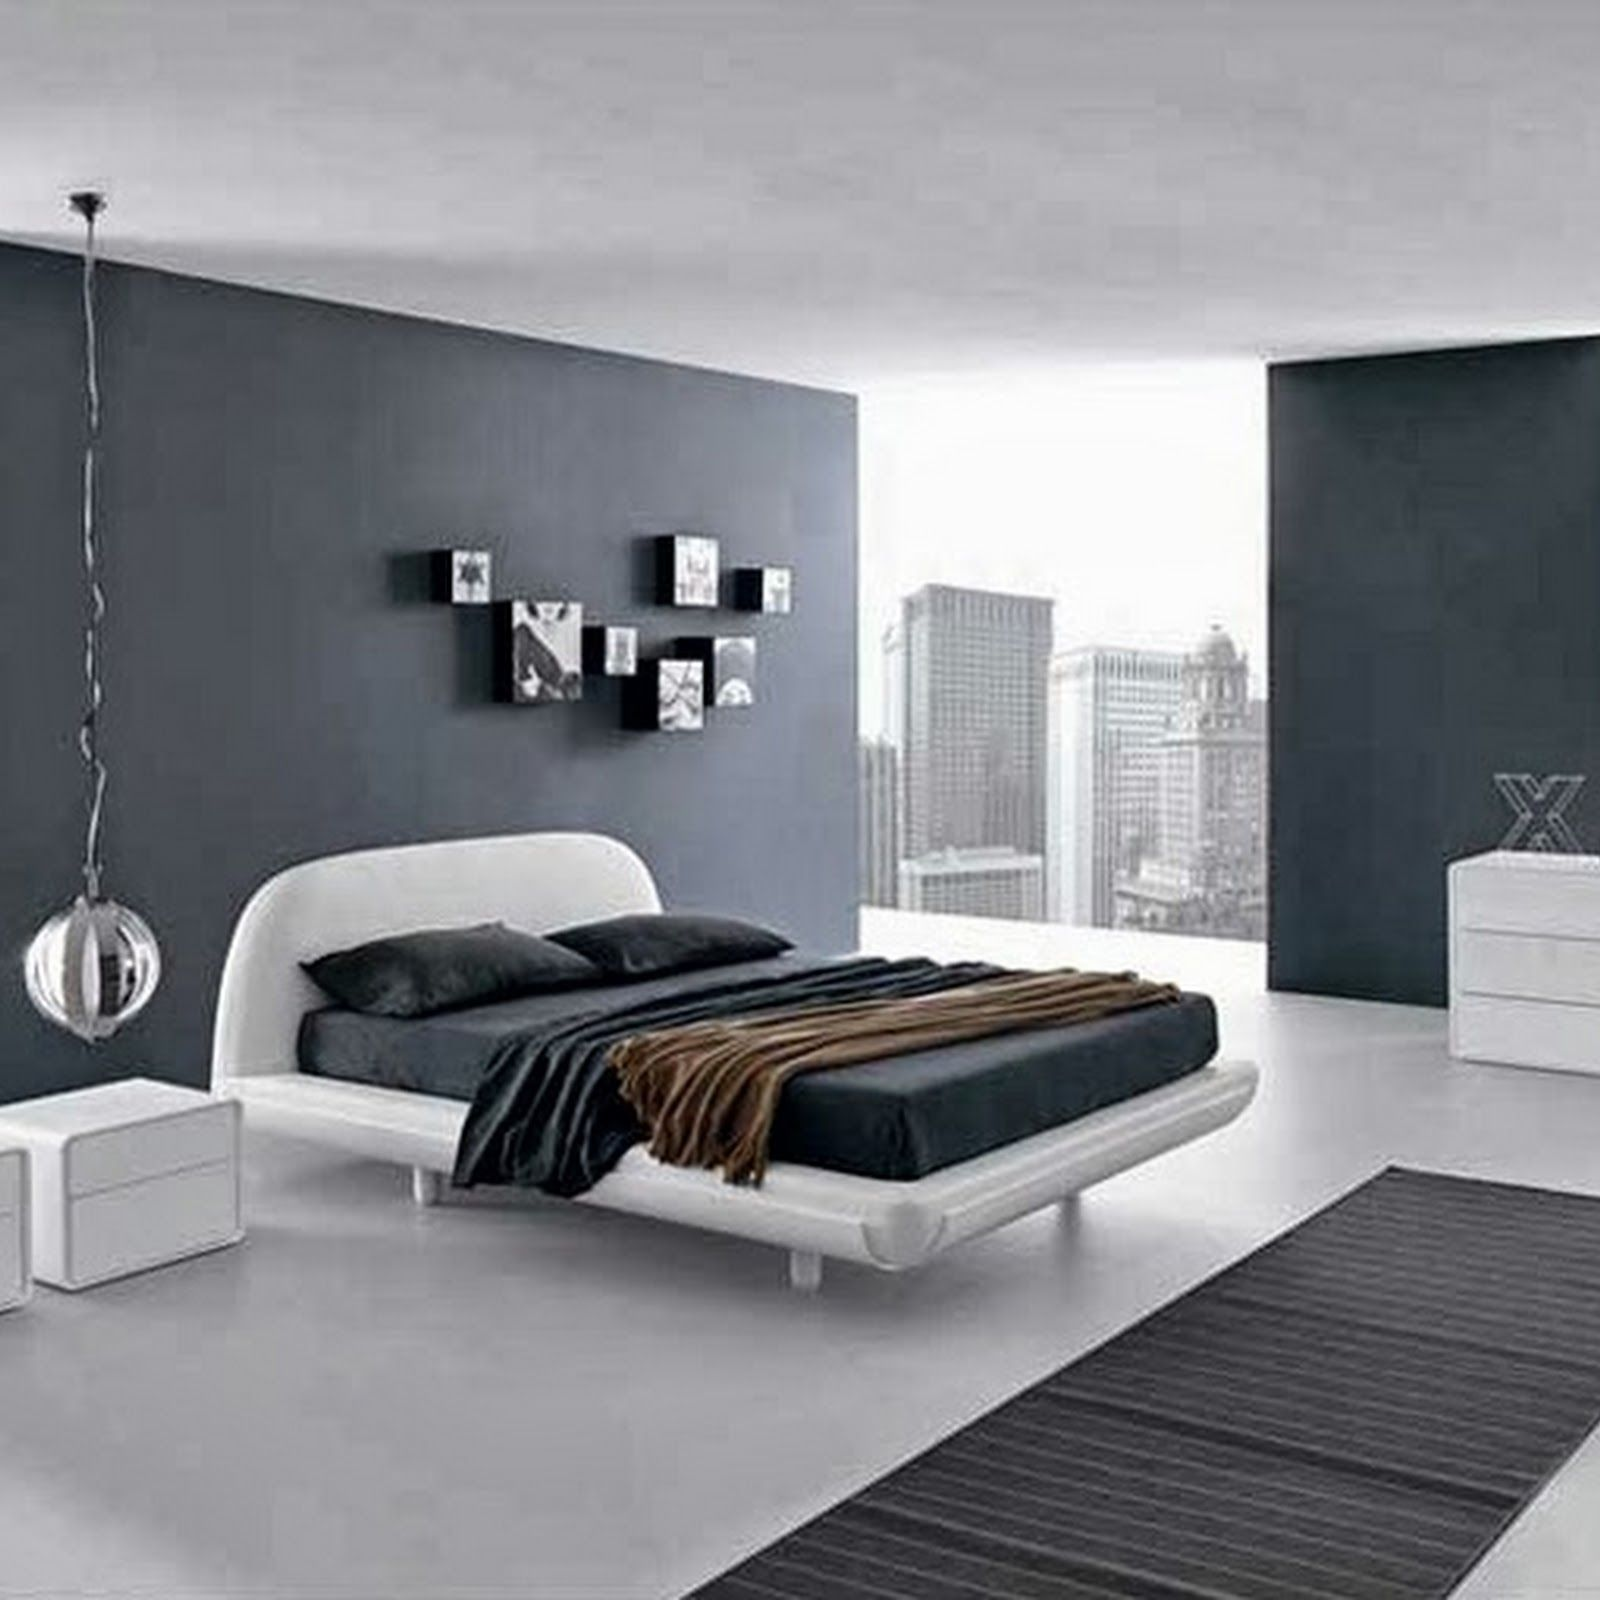 Bedroom wall ideas modern - Bedroom Wall Design 1000 Images About Grey Walls Bedroom Design On Pinterest Grey Wall Bedroom Grey